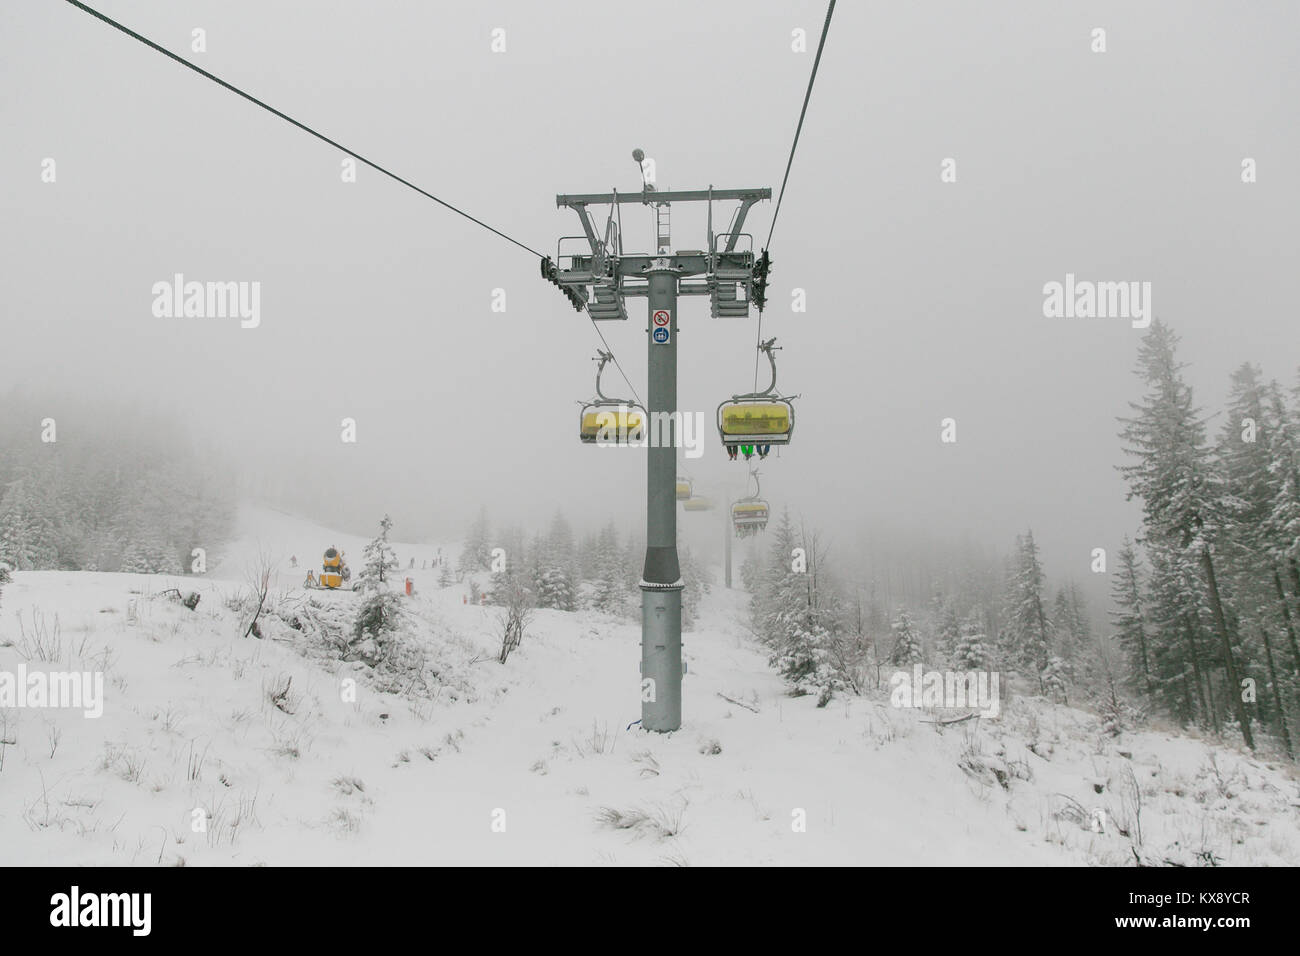 Ski chairlift bringing skiers and snowboarders up the Skrzyczne mountain after heavy snowfall on a misty winter - Stock Image